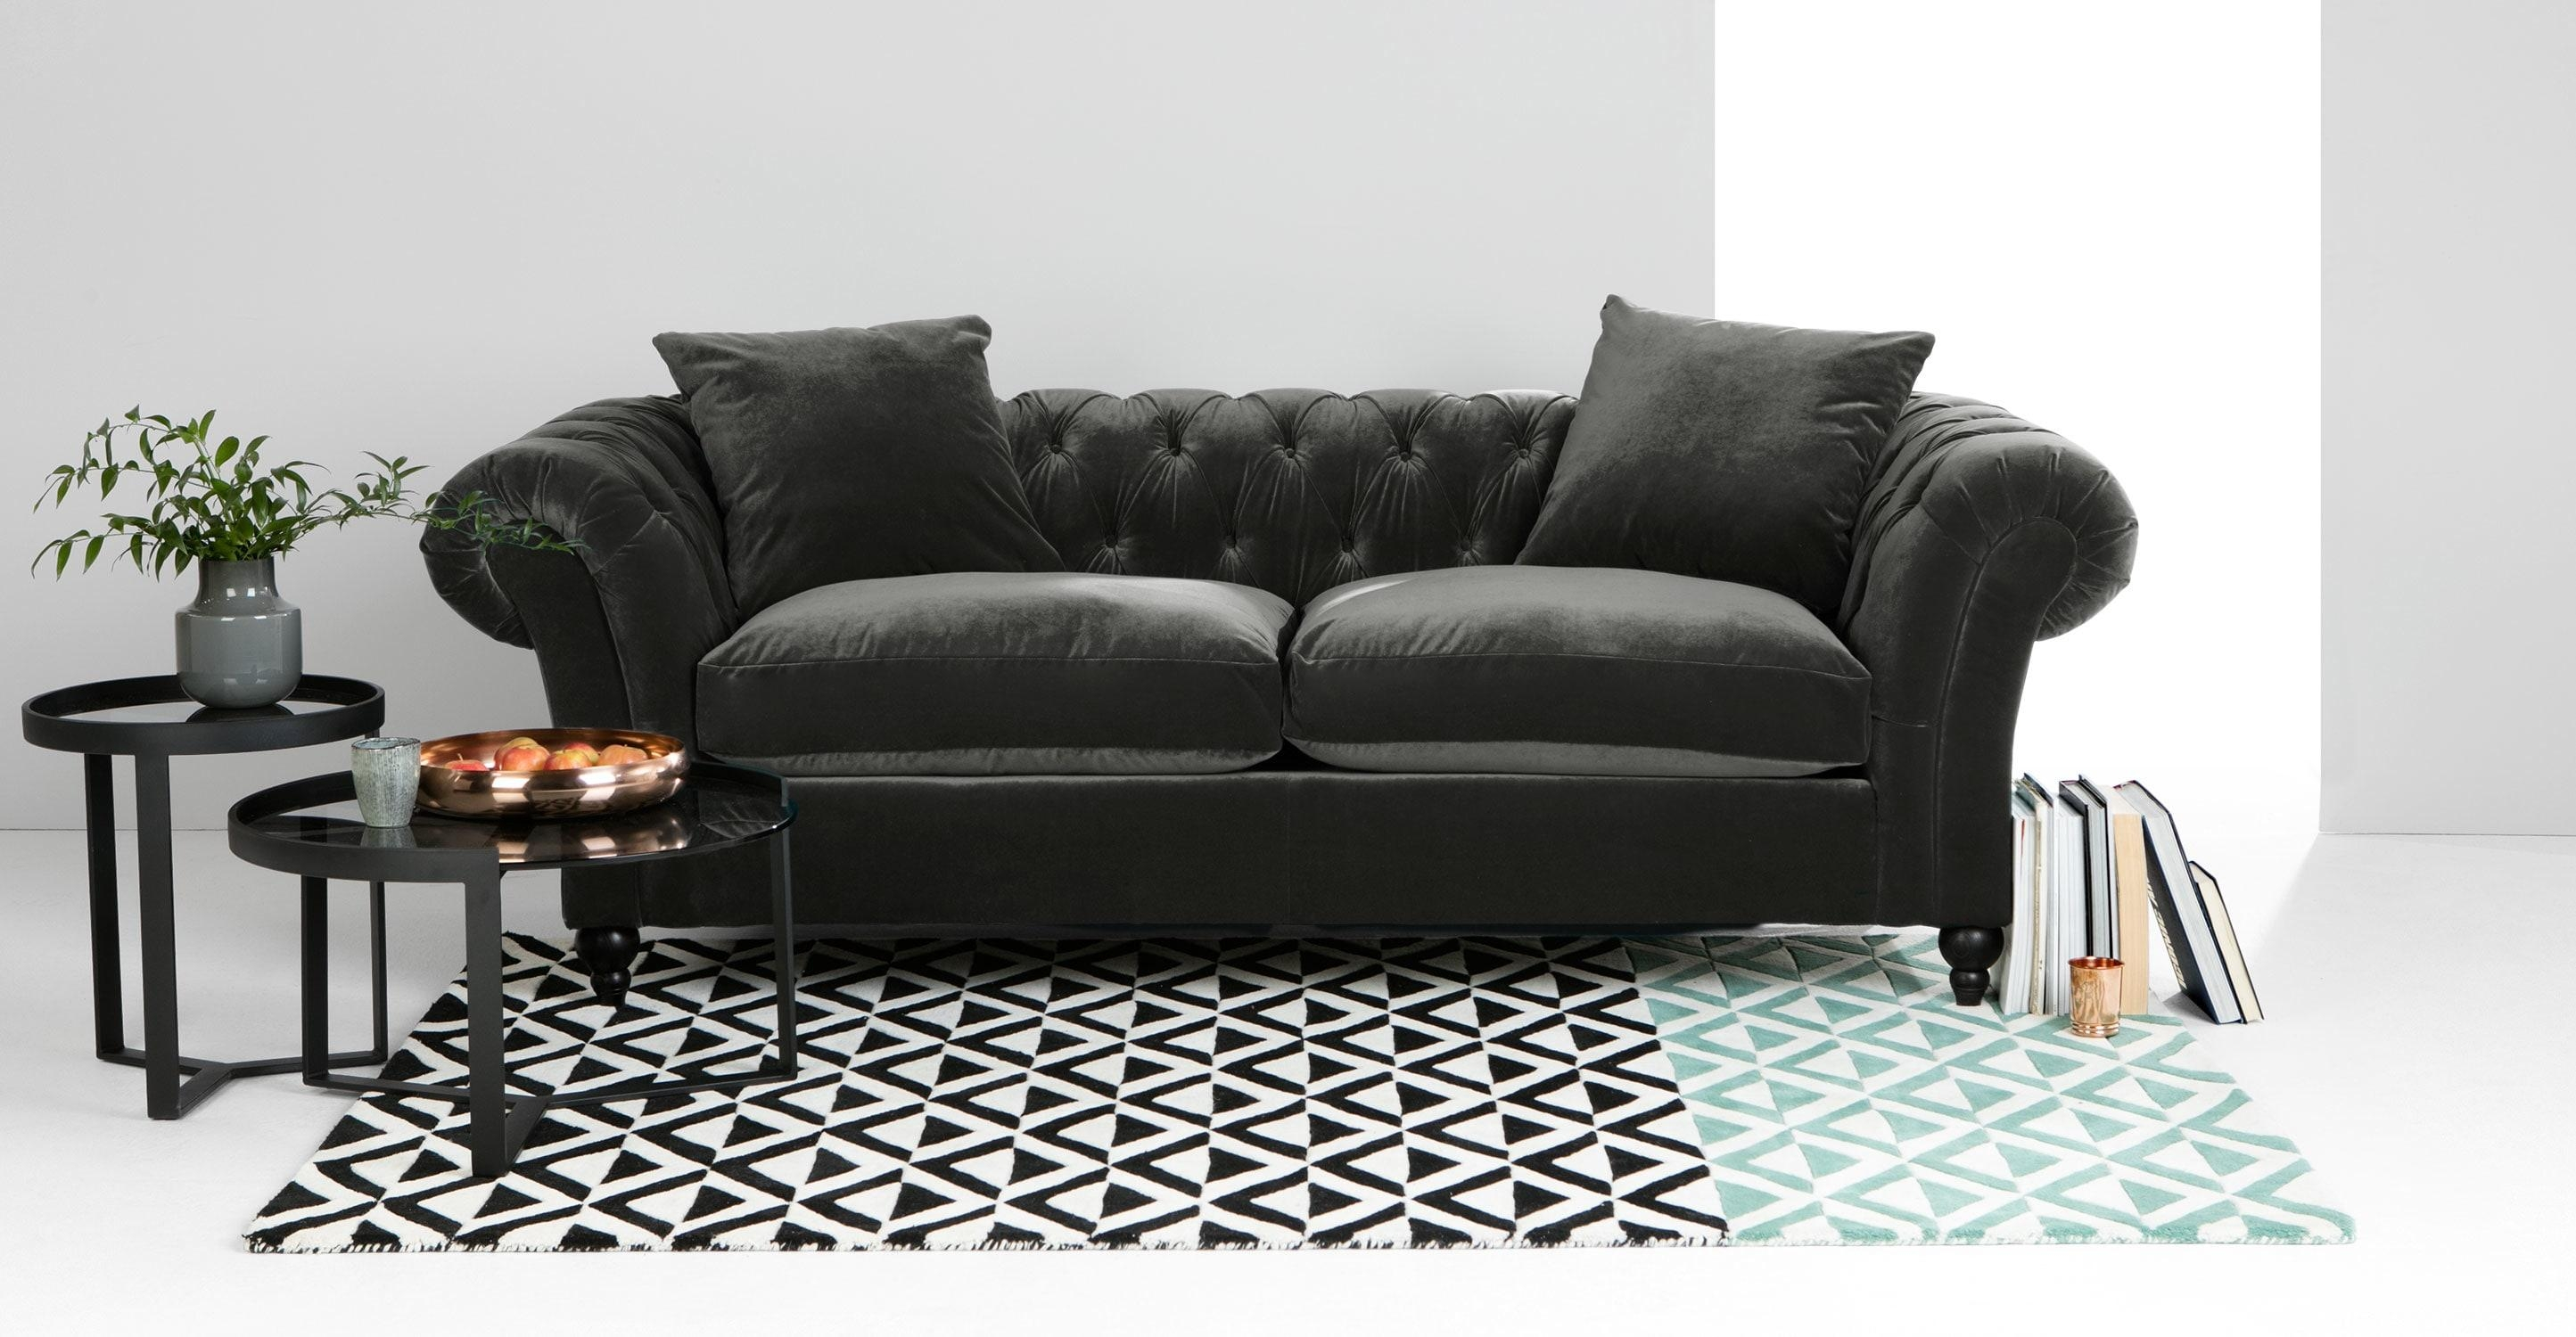 Delighful Grey Velvet Chesterfield Sofa Throughout Ideas For Purple Chesterfield Sofas (Image 6 of 20)